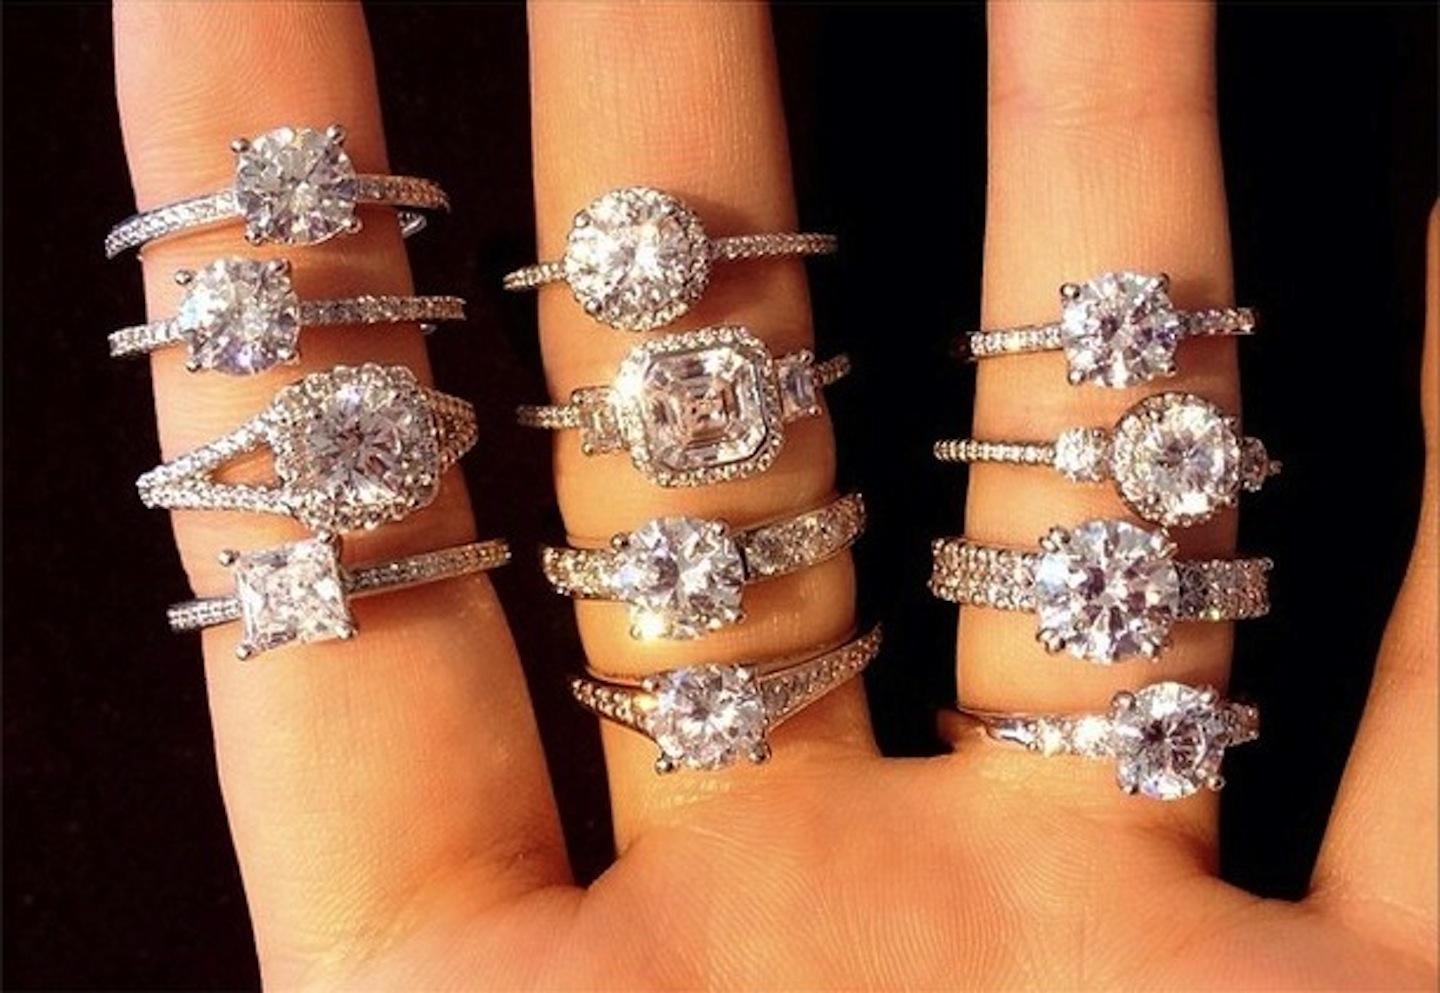 Try out as many rings as you can